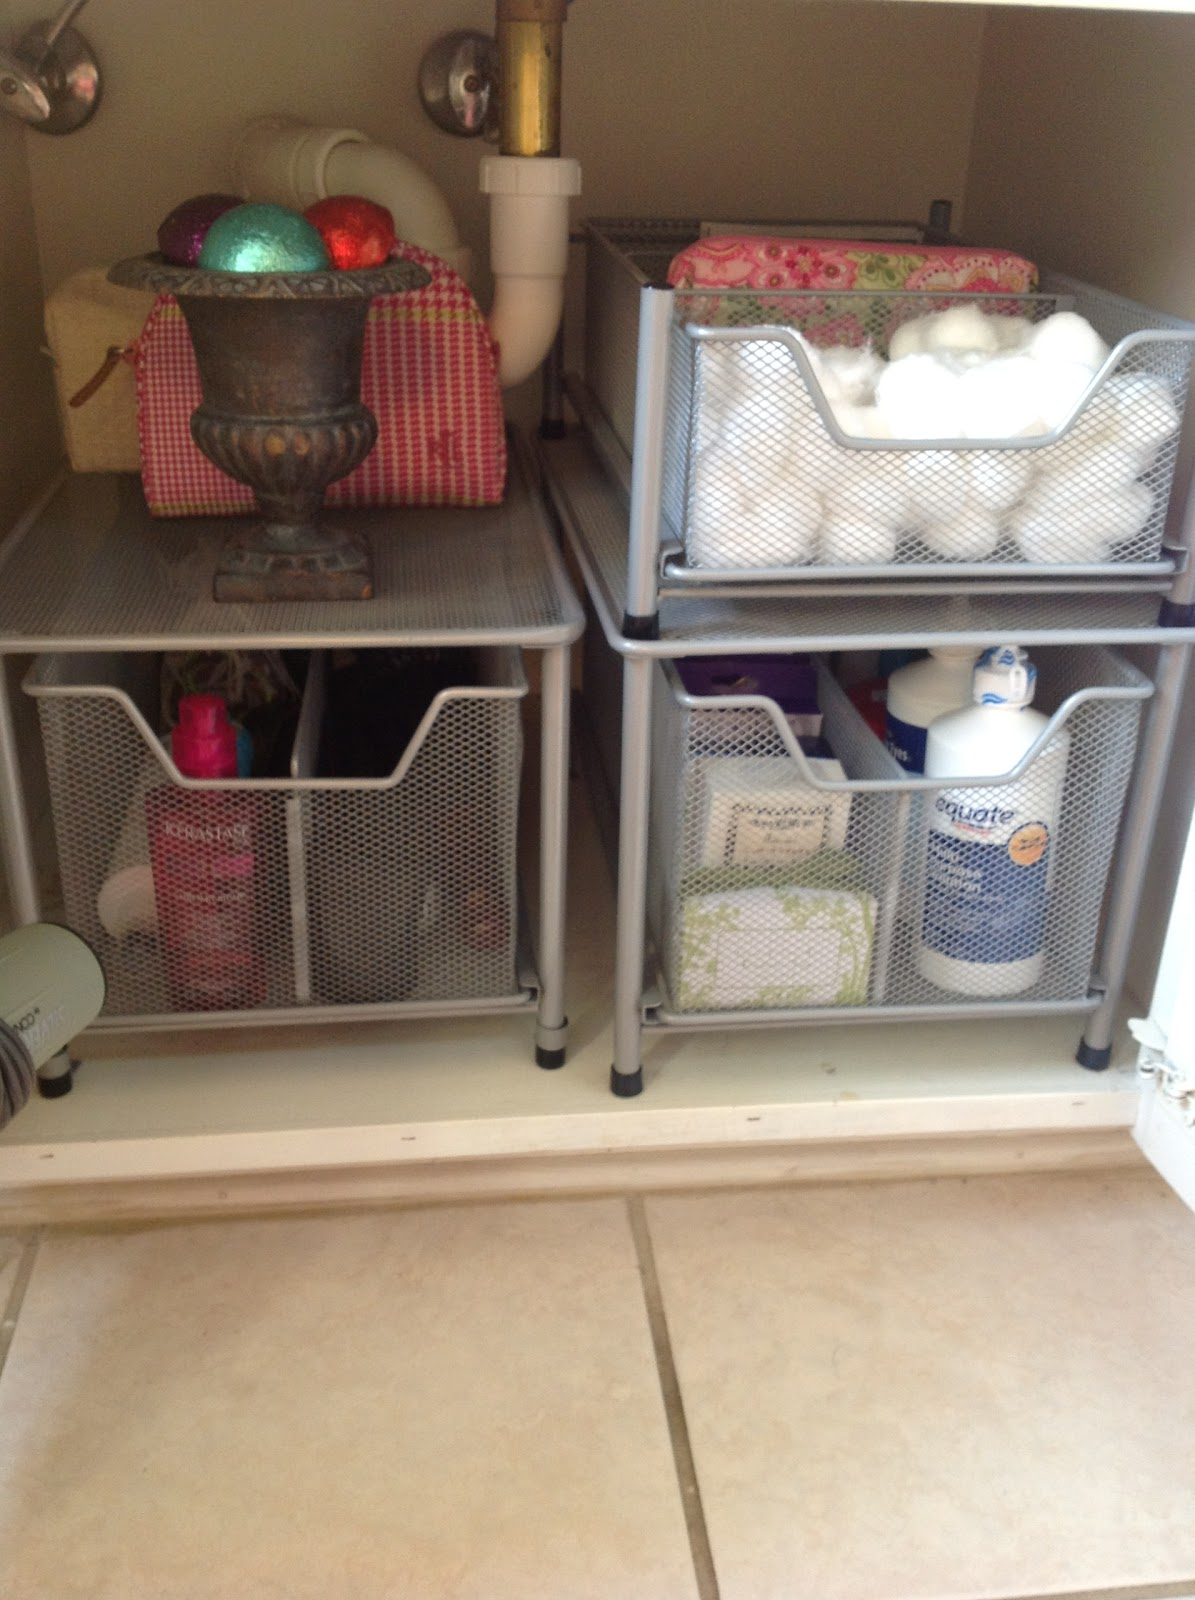 O is for organize under the bathroom sink How to organize bathroom